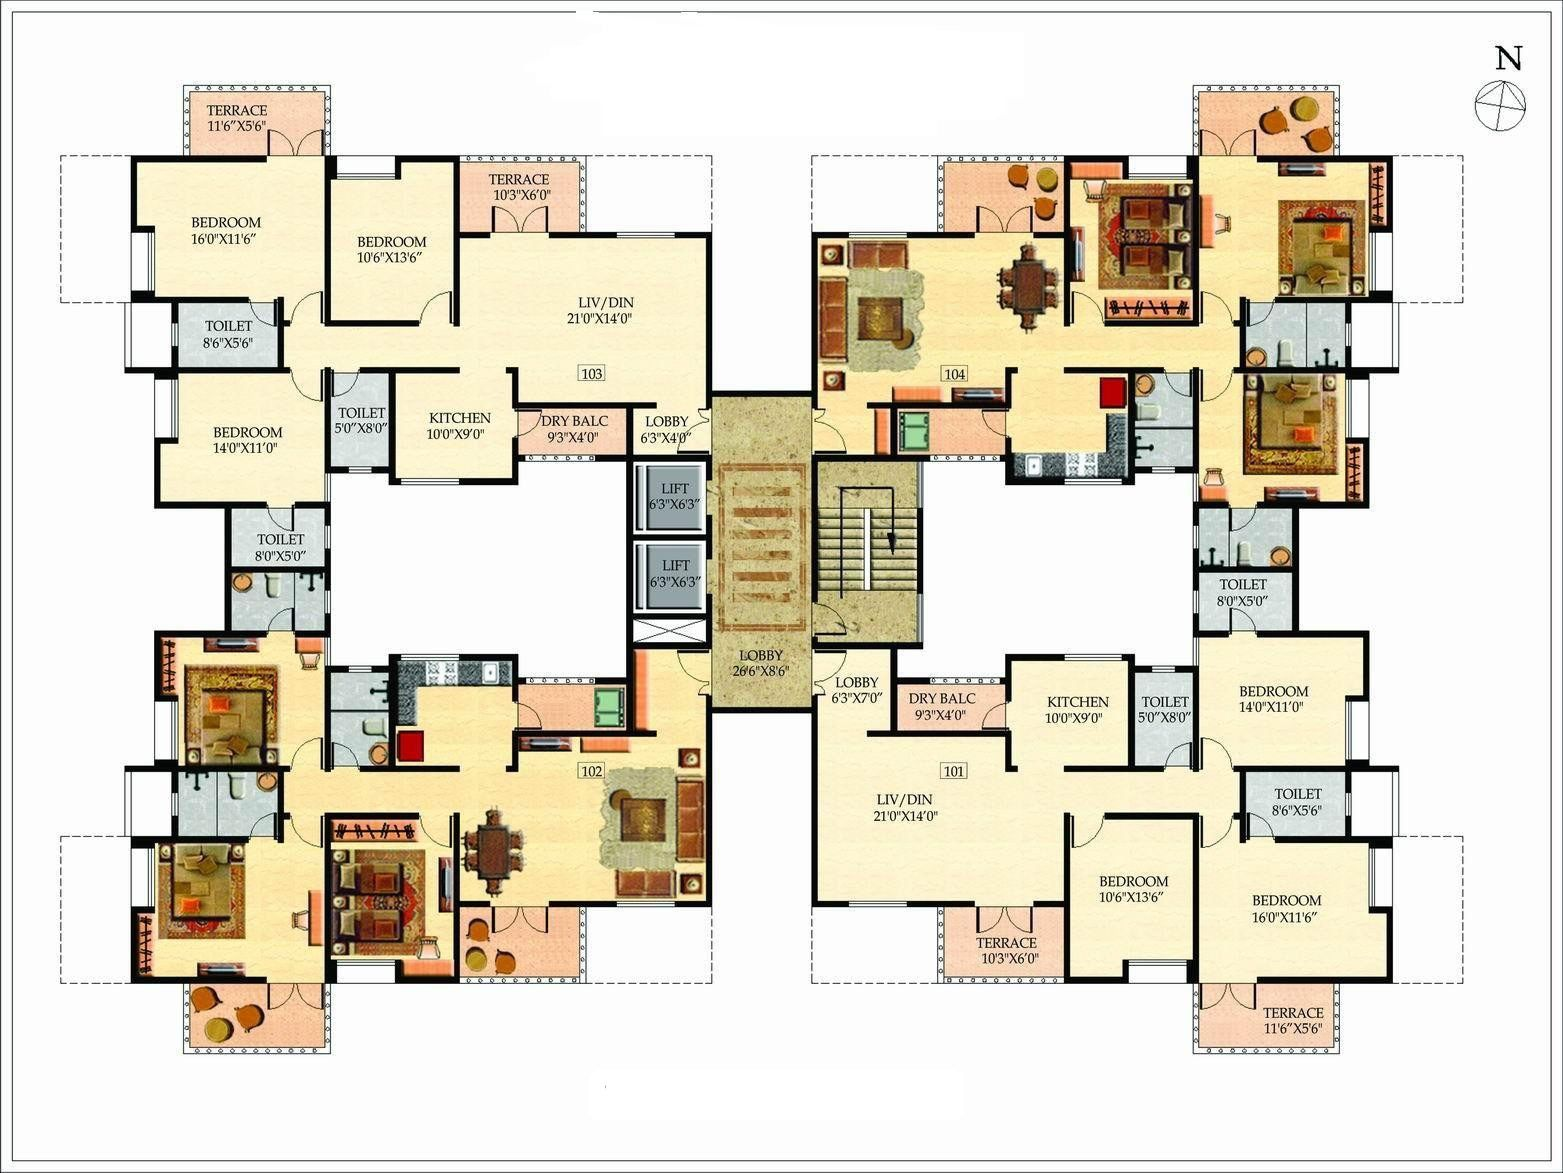 6 bedroom mansion floor plans design ideas 2017 2018 pinterest mansion bedrooms and - Best house plans for a family of four ...